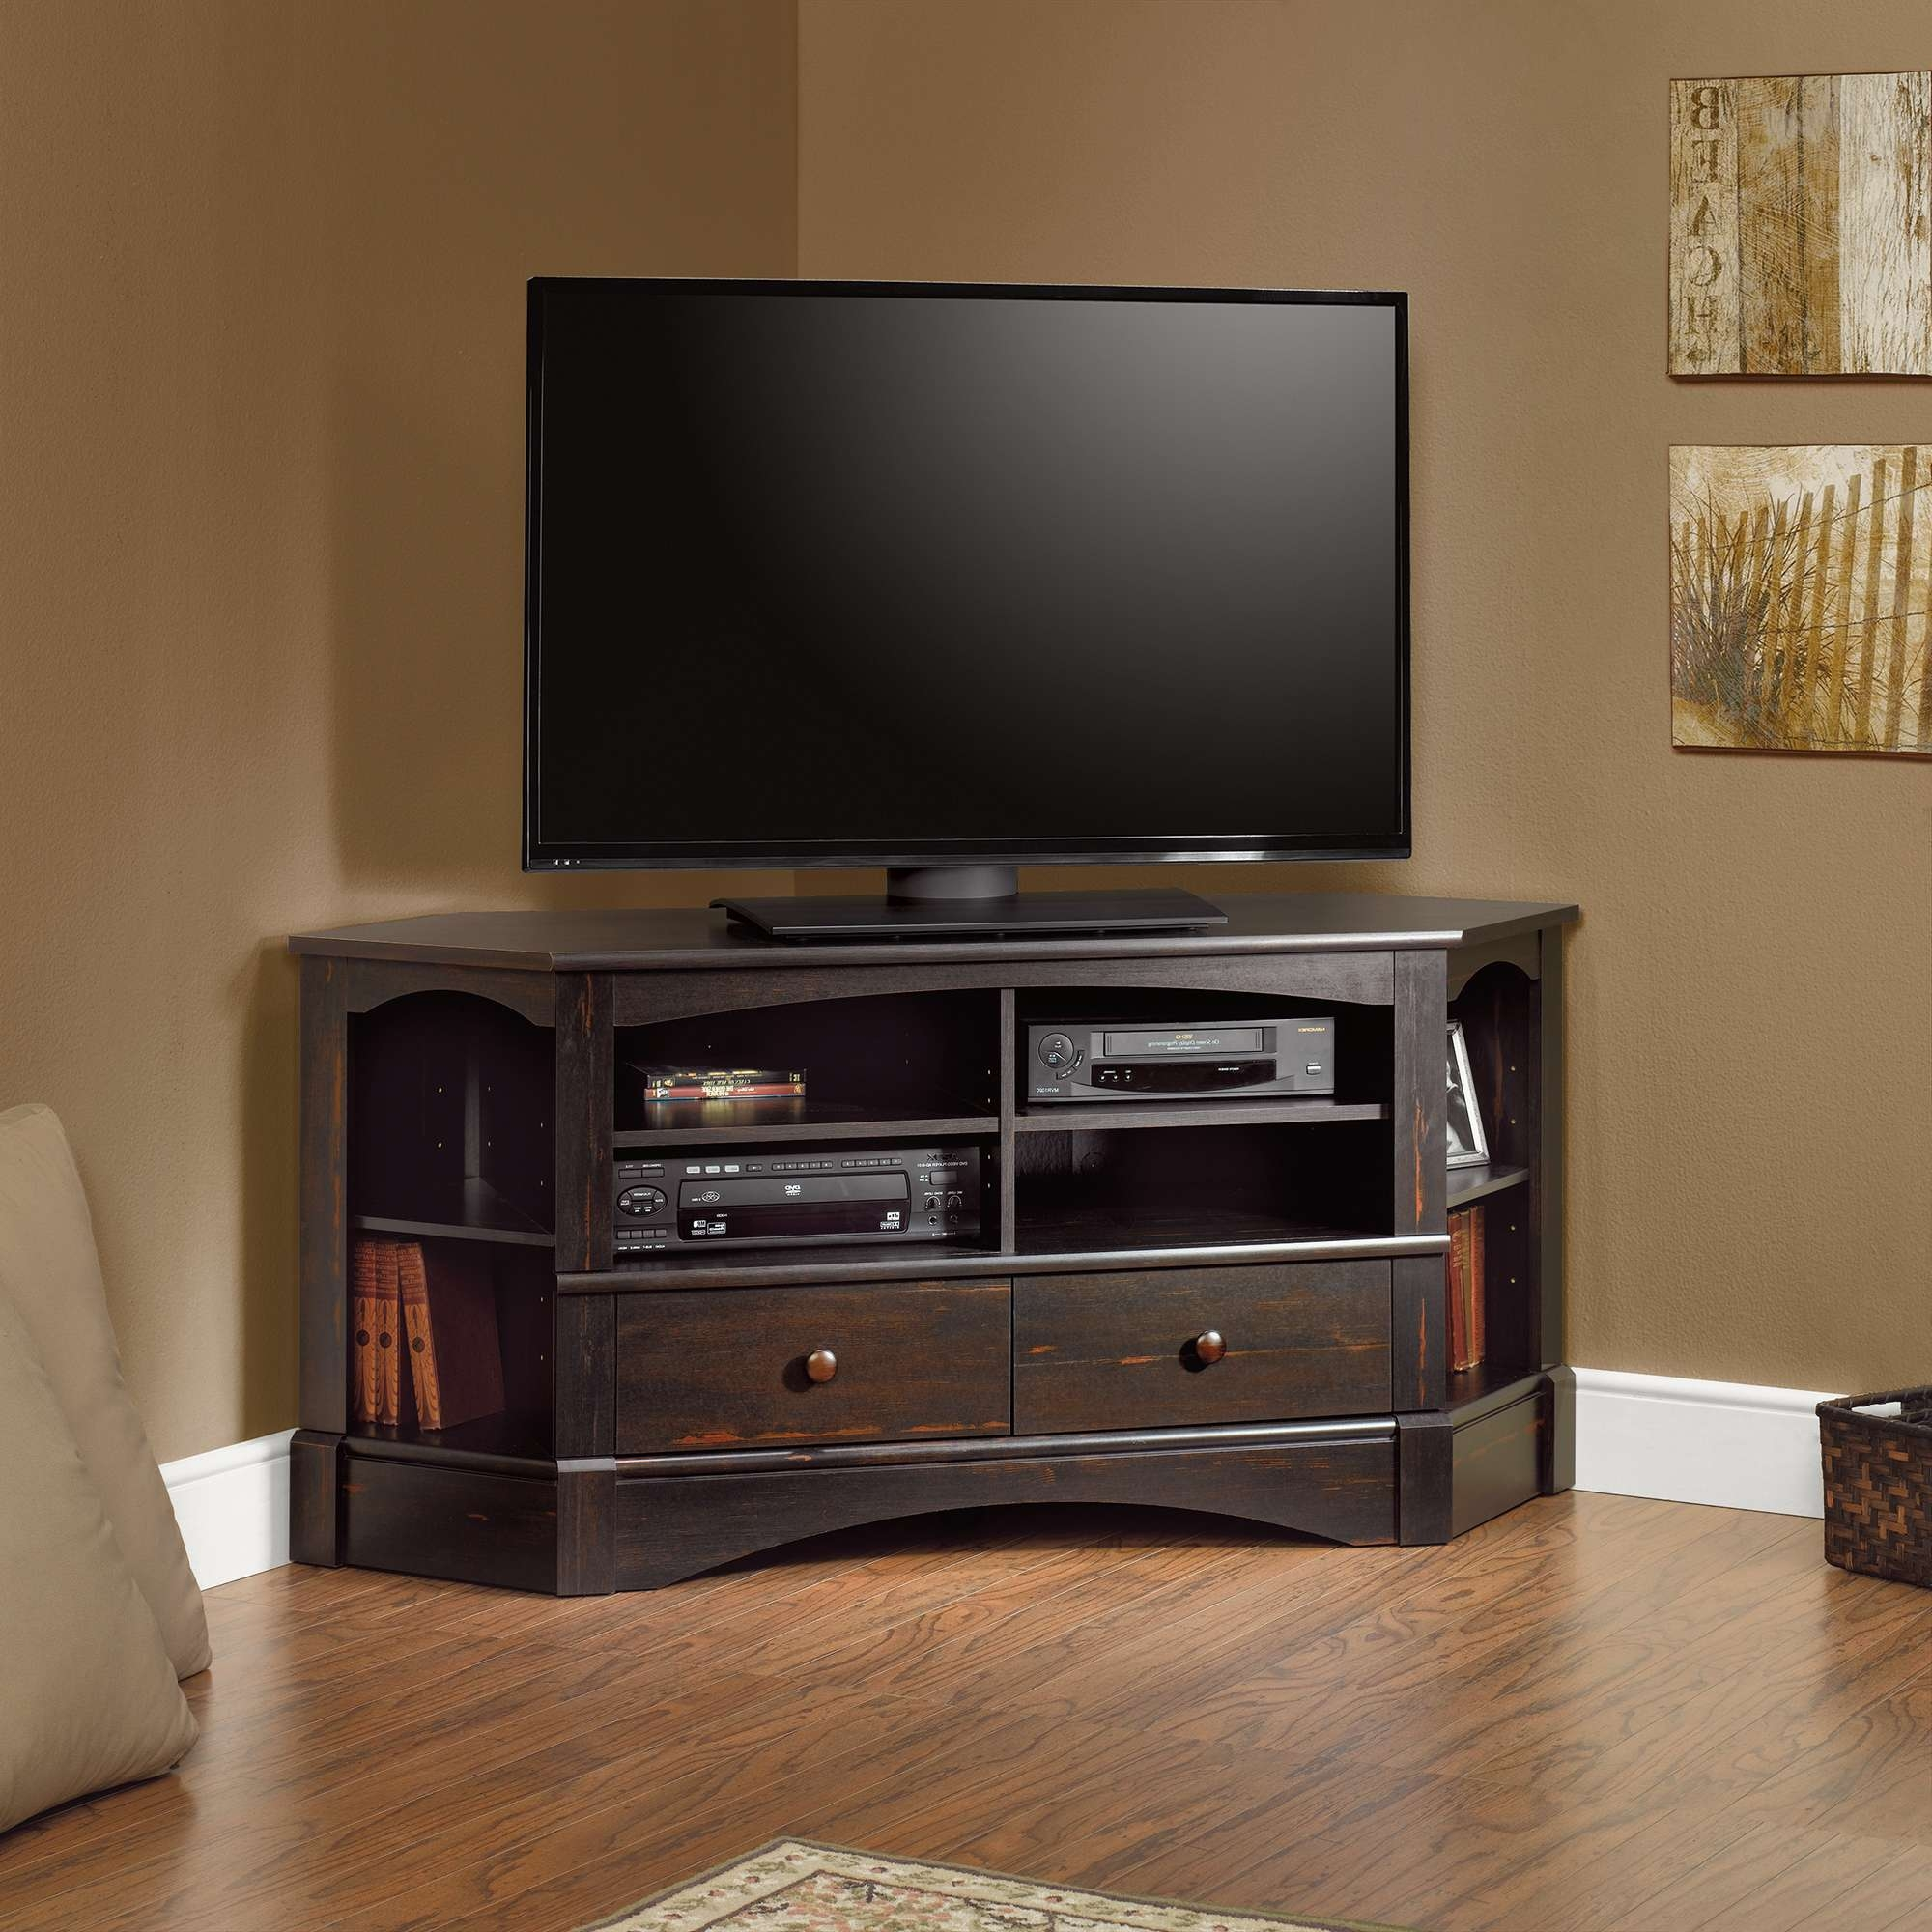 Corner Tv Stands For Flat Screen Tvs For Flat Screen Tv Stands Corner Units (View 8 of 20)